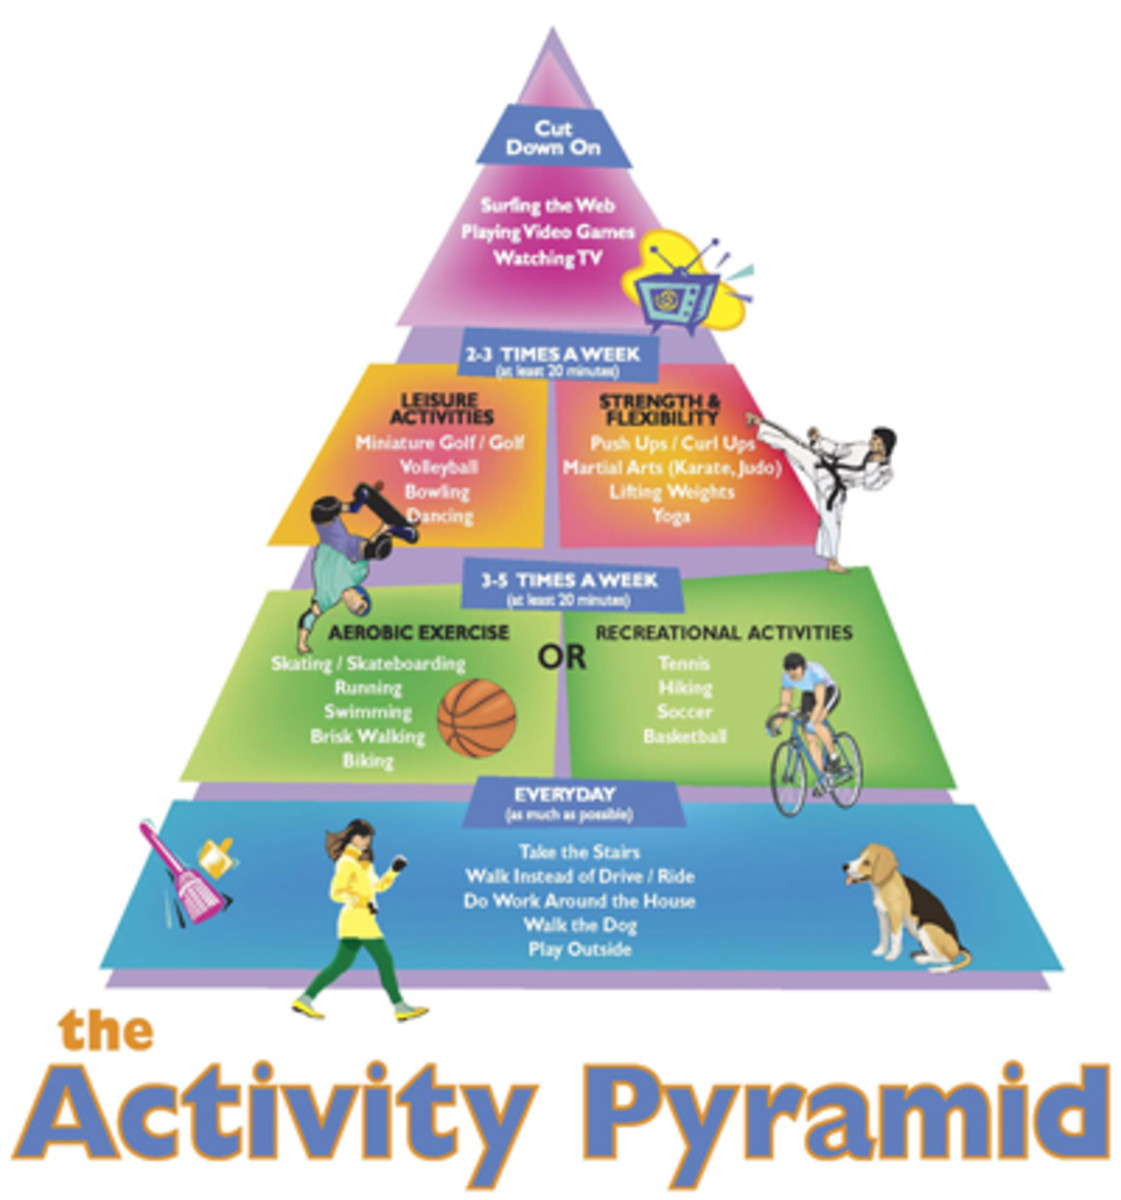 Activity Pyramid (courtesy of http://www.wellspan.org)